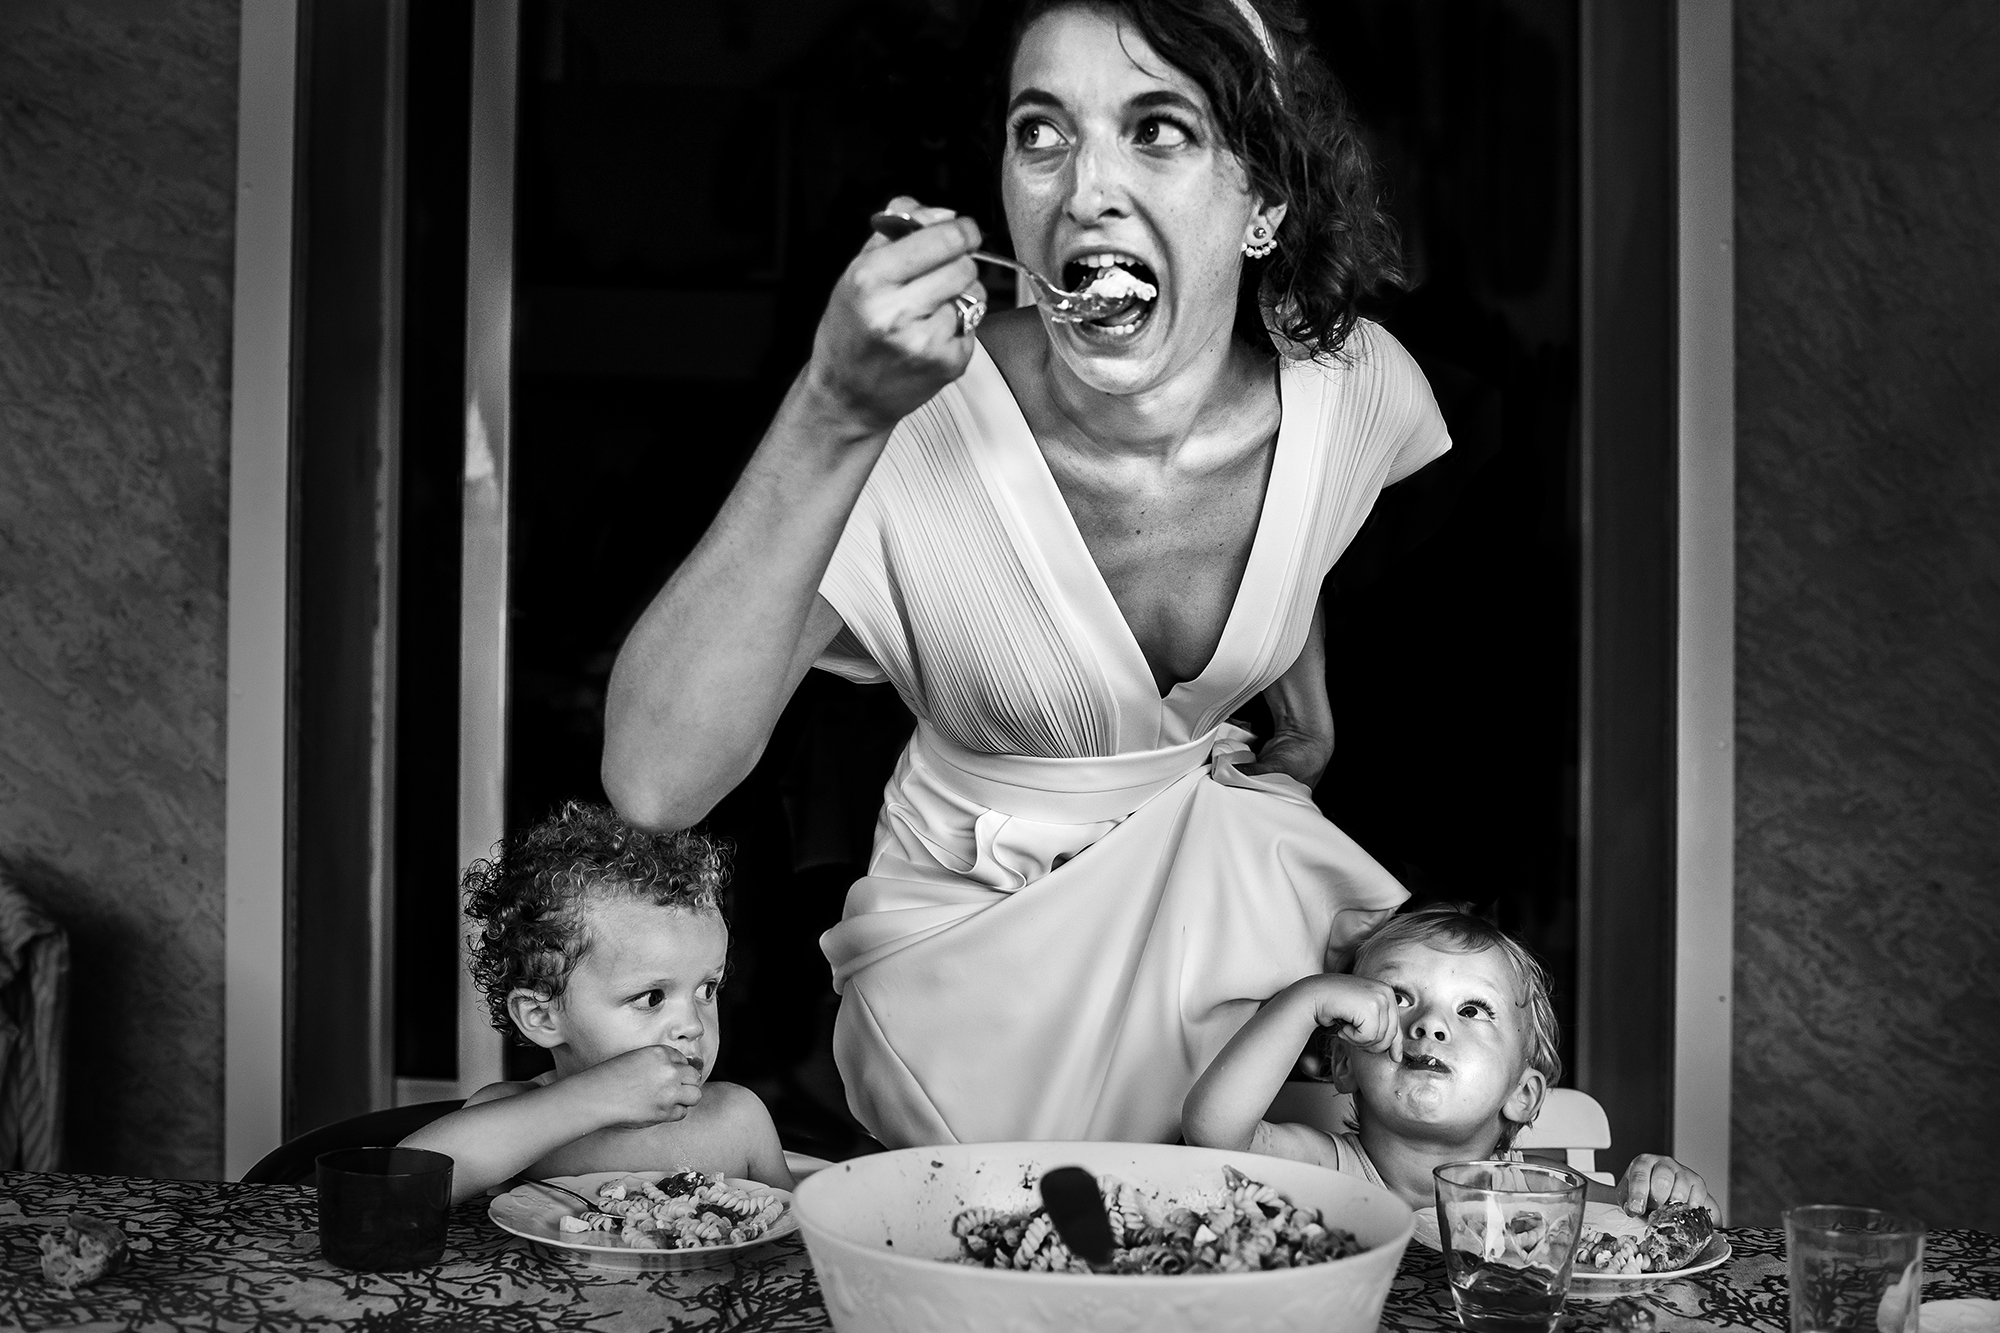 Candid of bride sneaking a bite with the kids - photo by Victor Lax